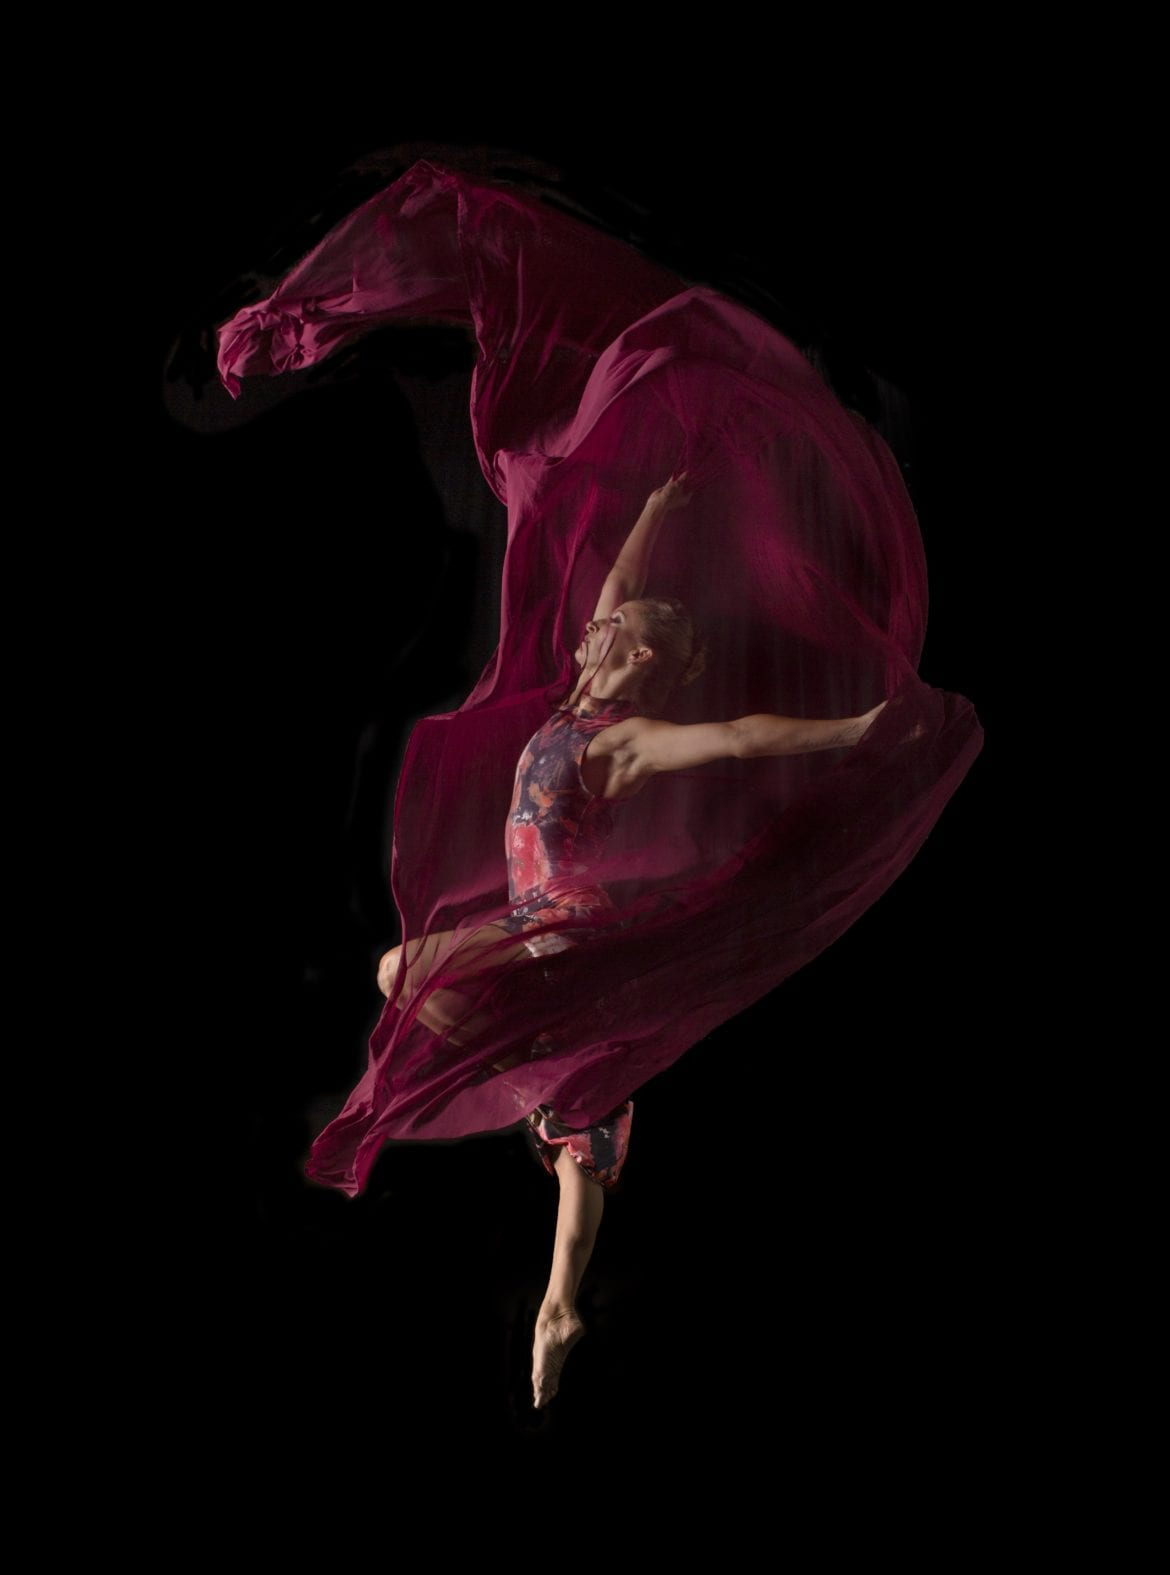 A woman draped in magenta, dancing.